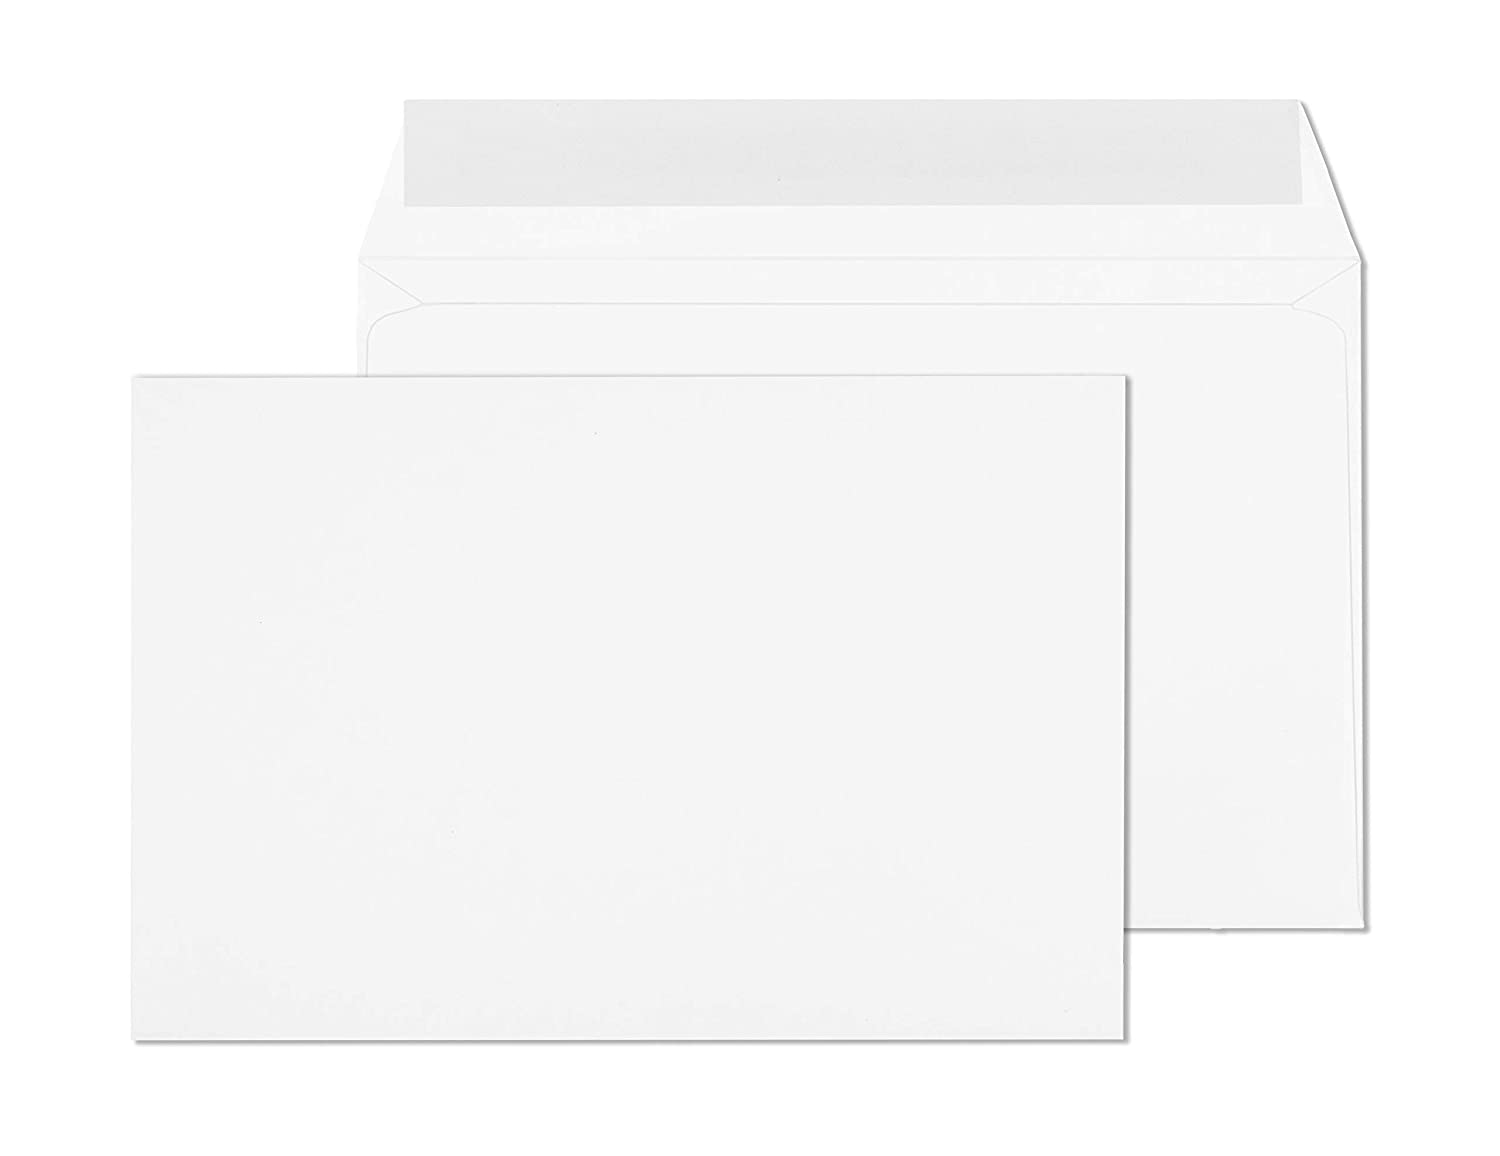 Open Side Peel /& Seal Envelopes Heavy-Duty 28 Pound White Envelopes 6x9 and Brochures - 6x9 Invitation Envelopes for Booklets 6 X 9 Booklet Envelopes Self Seal Pack of 50 Letters